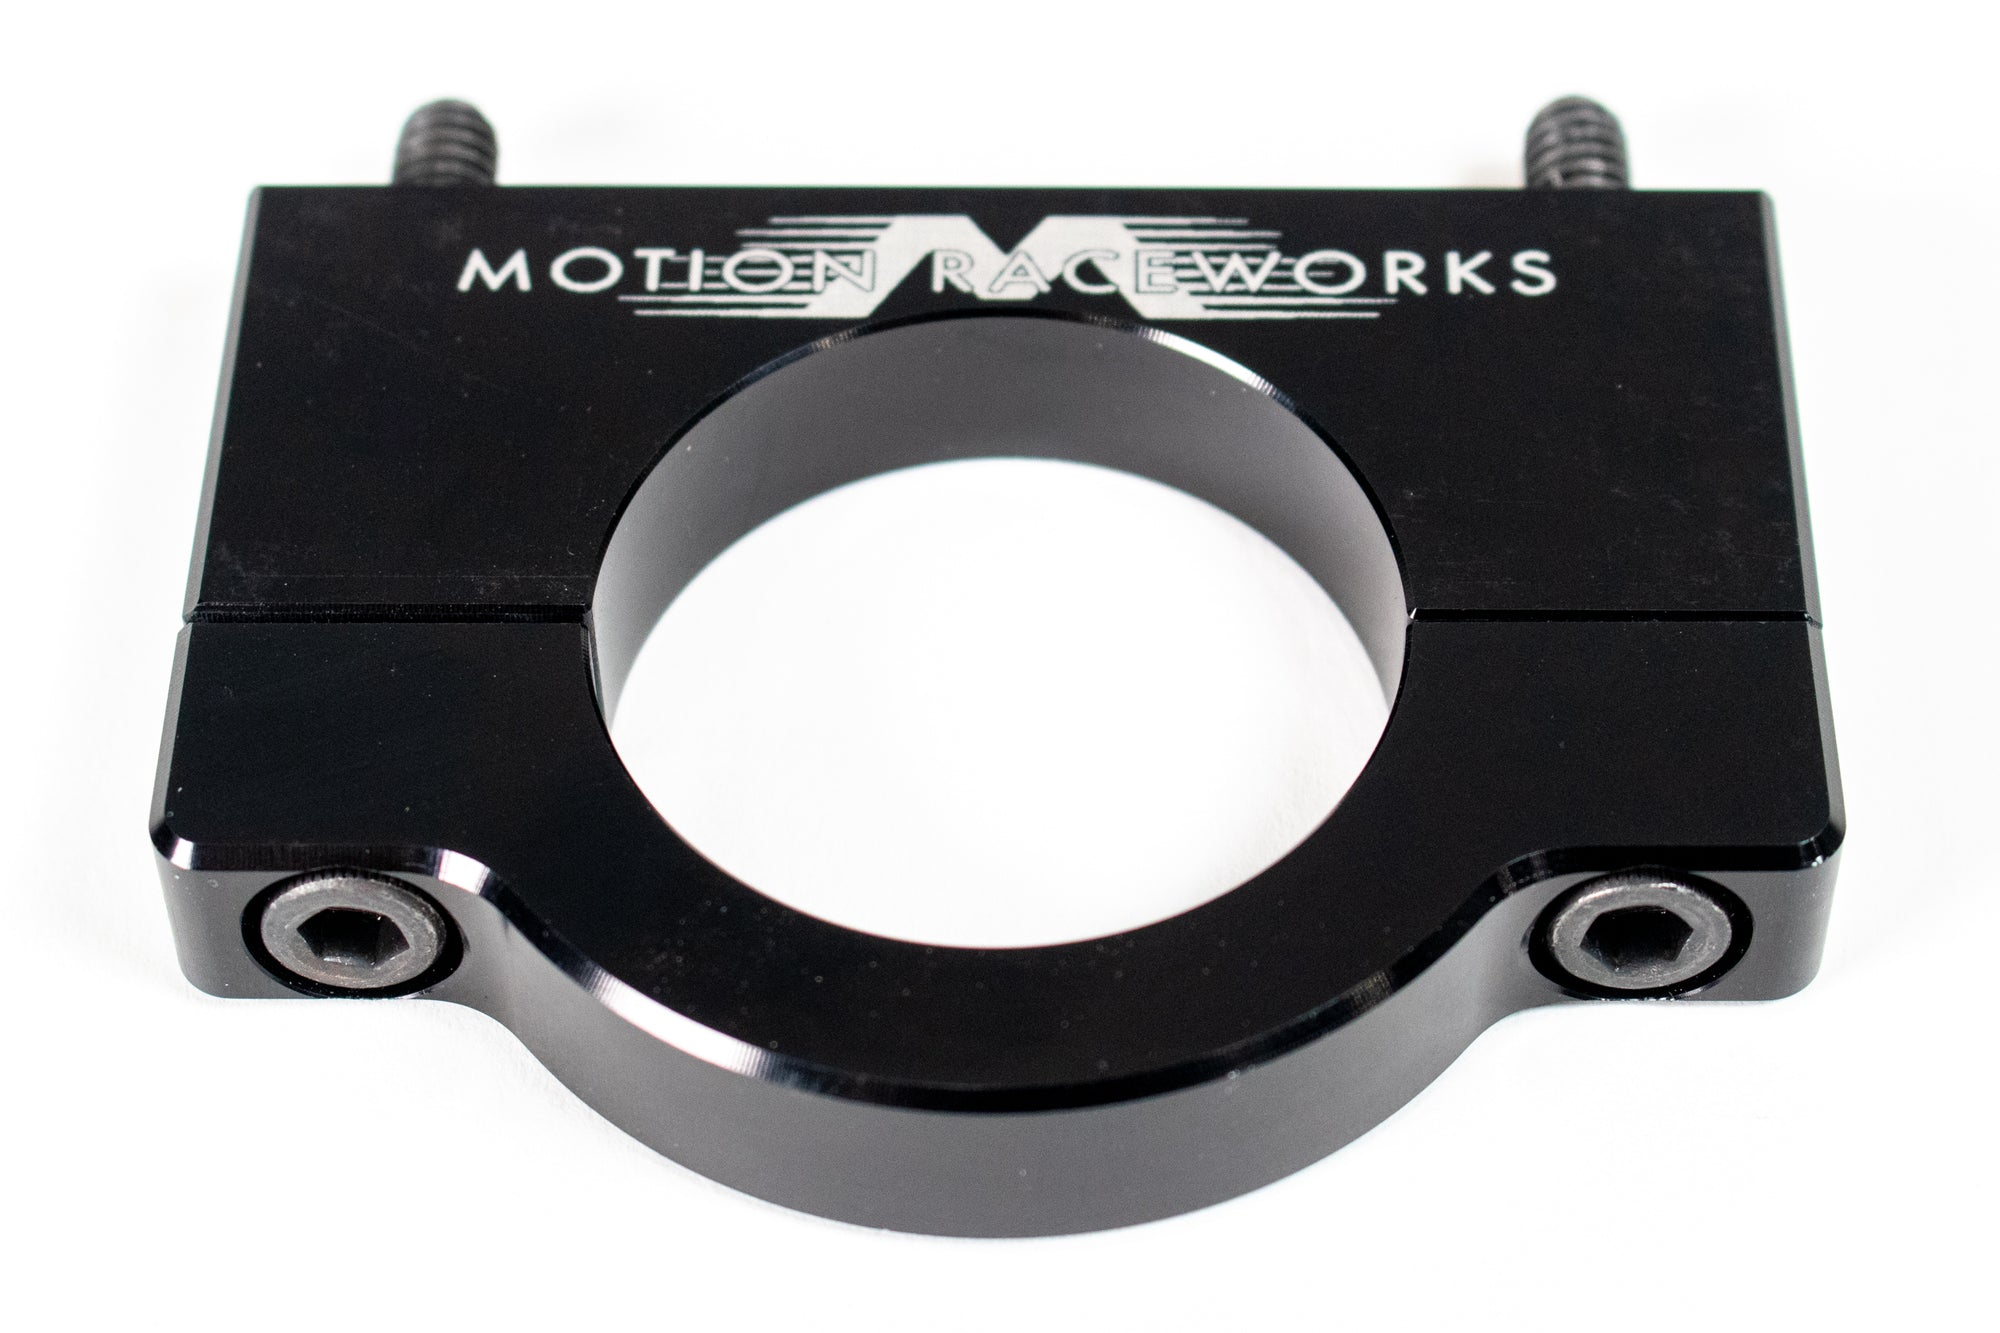 Motion Raceworks 1 1/4 Roll bar mount 1812001 - Motion Raceworks